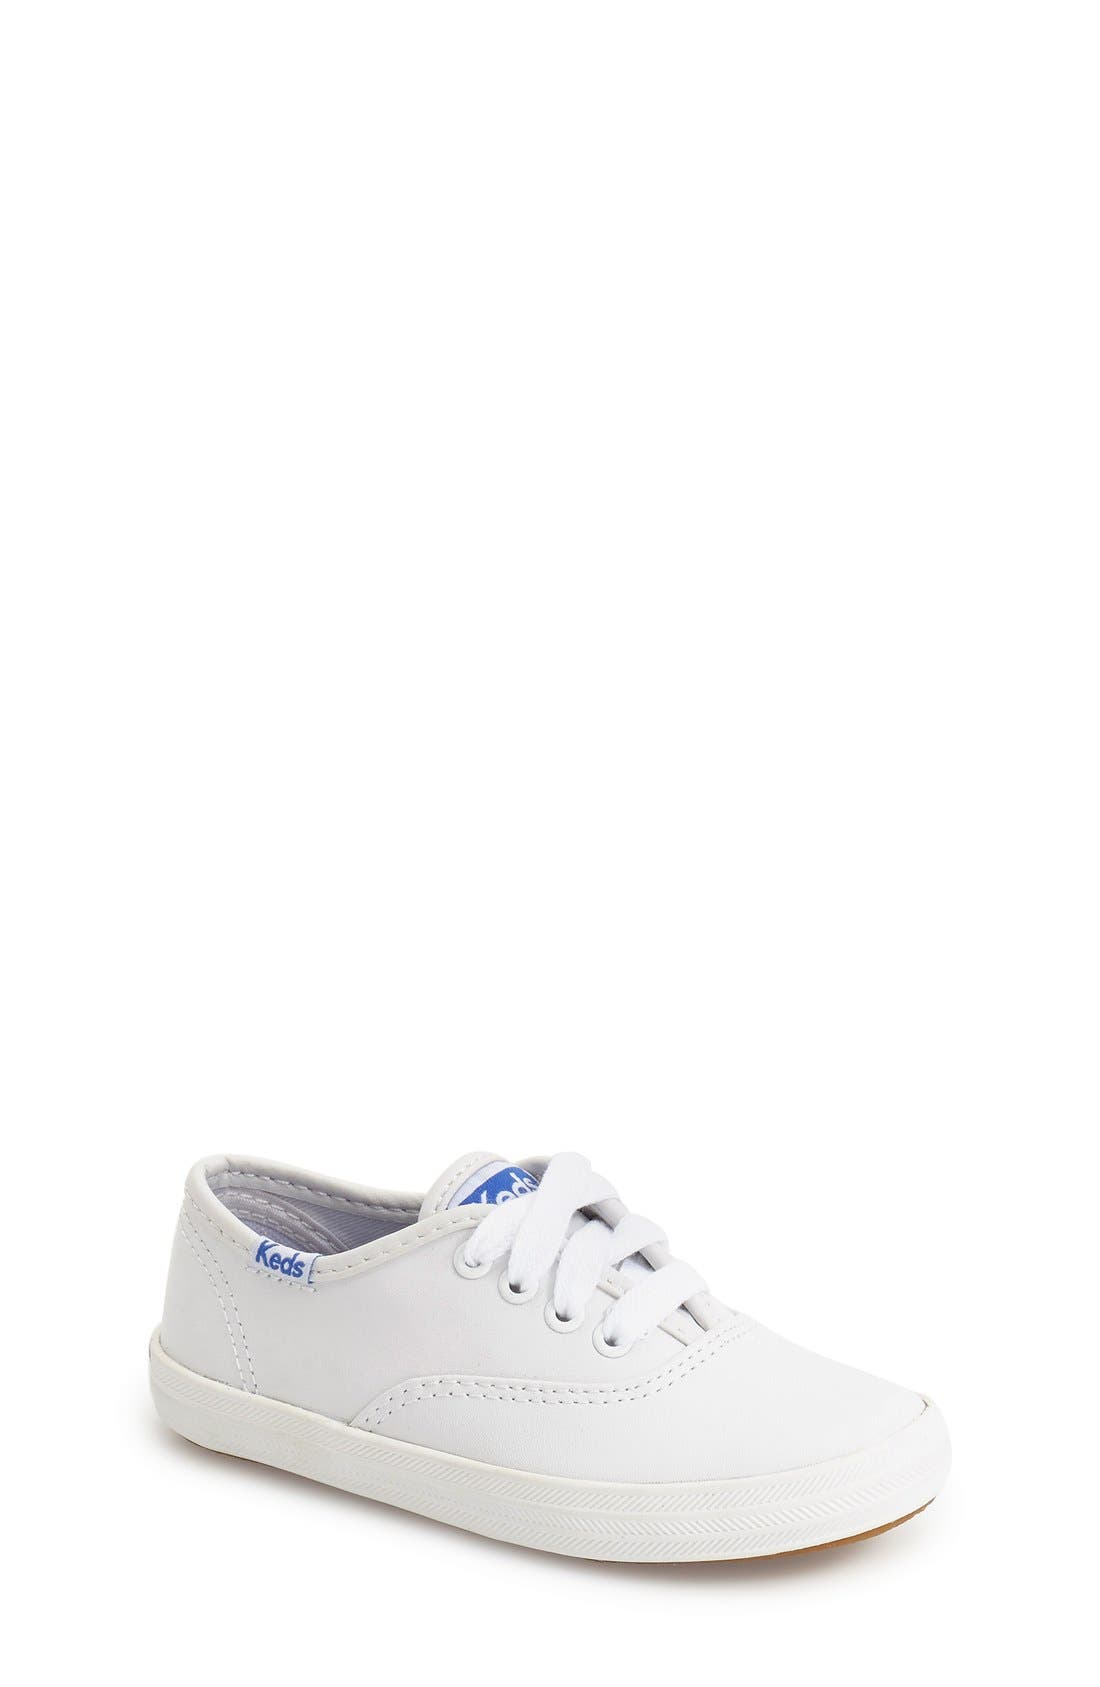 Alternate Image 1 Selected - Keds® 'Champion - CVO' Sneaker (Walker, Toddler, Little Kid & Big Kid)